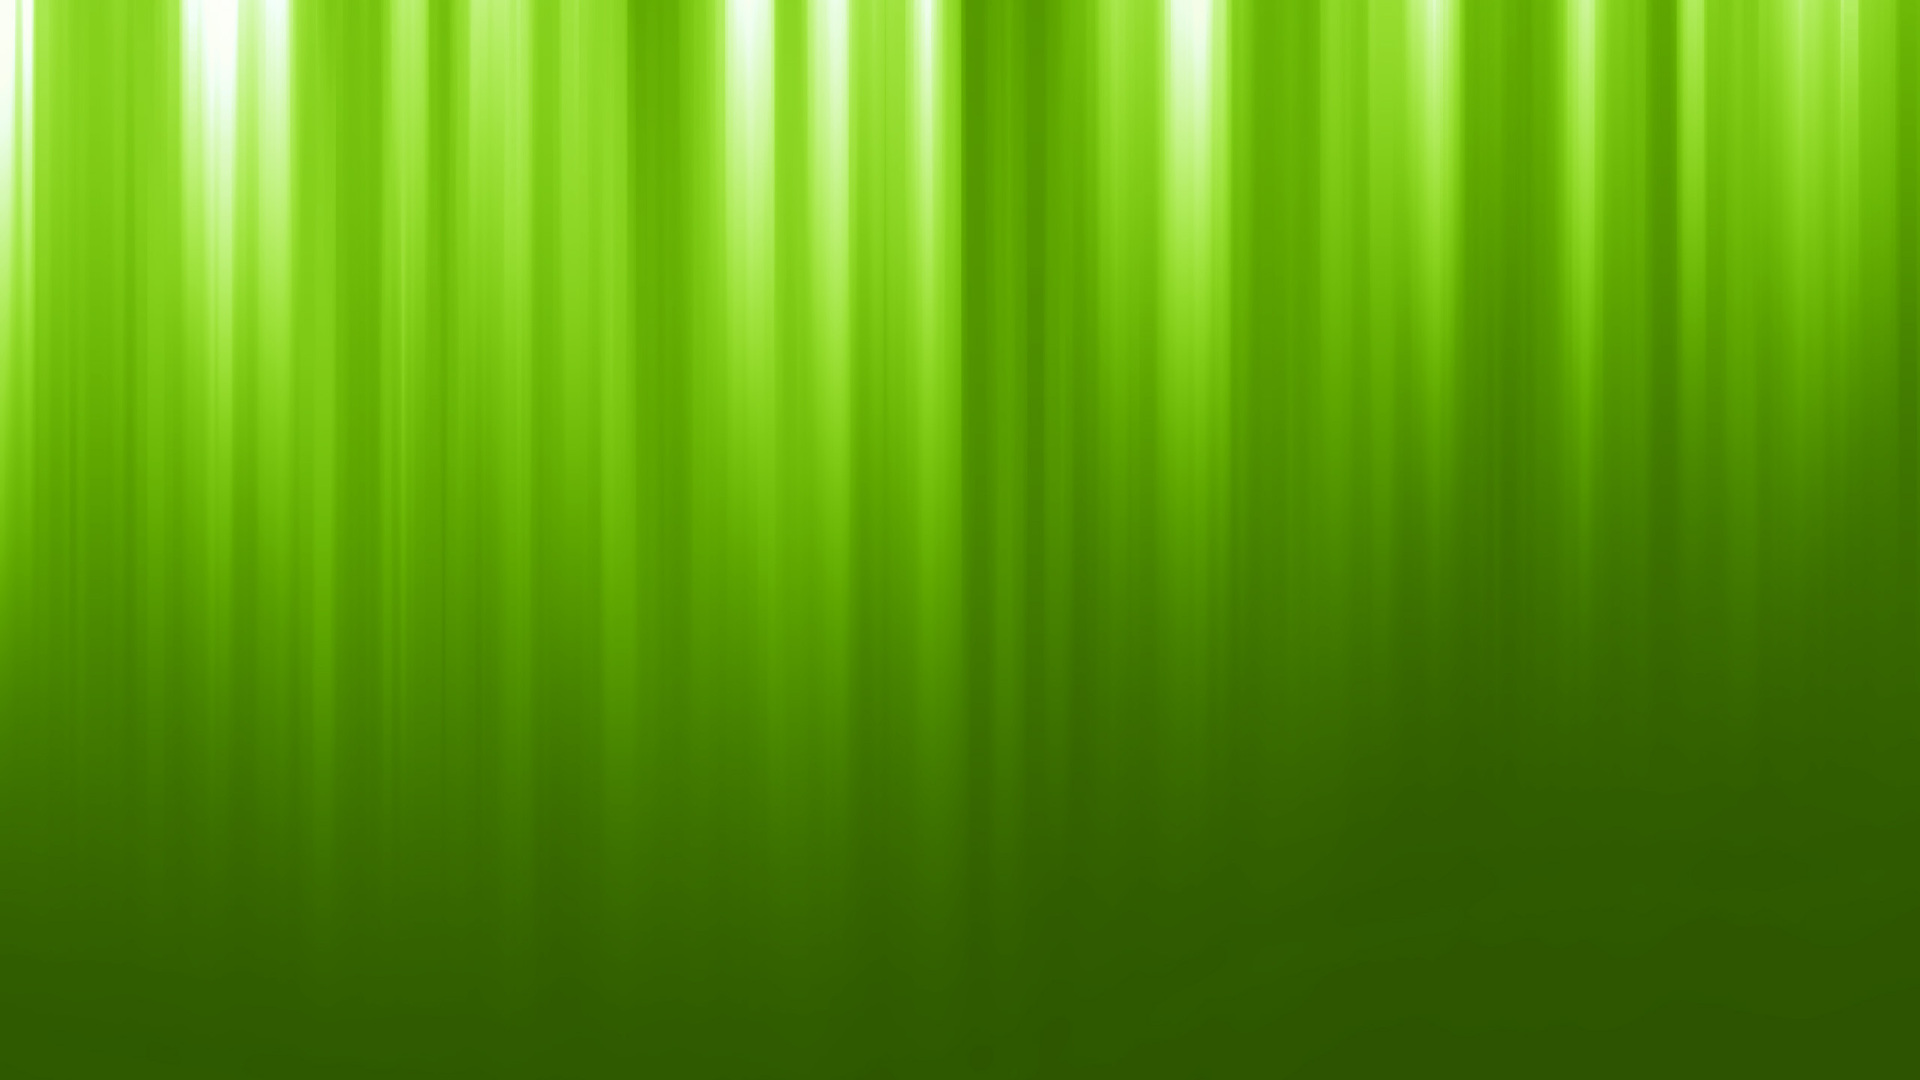 green backgrounds  If you need Artistic Green background for 1920x1080